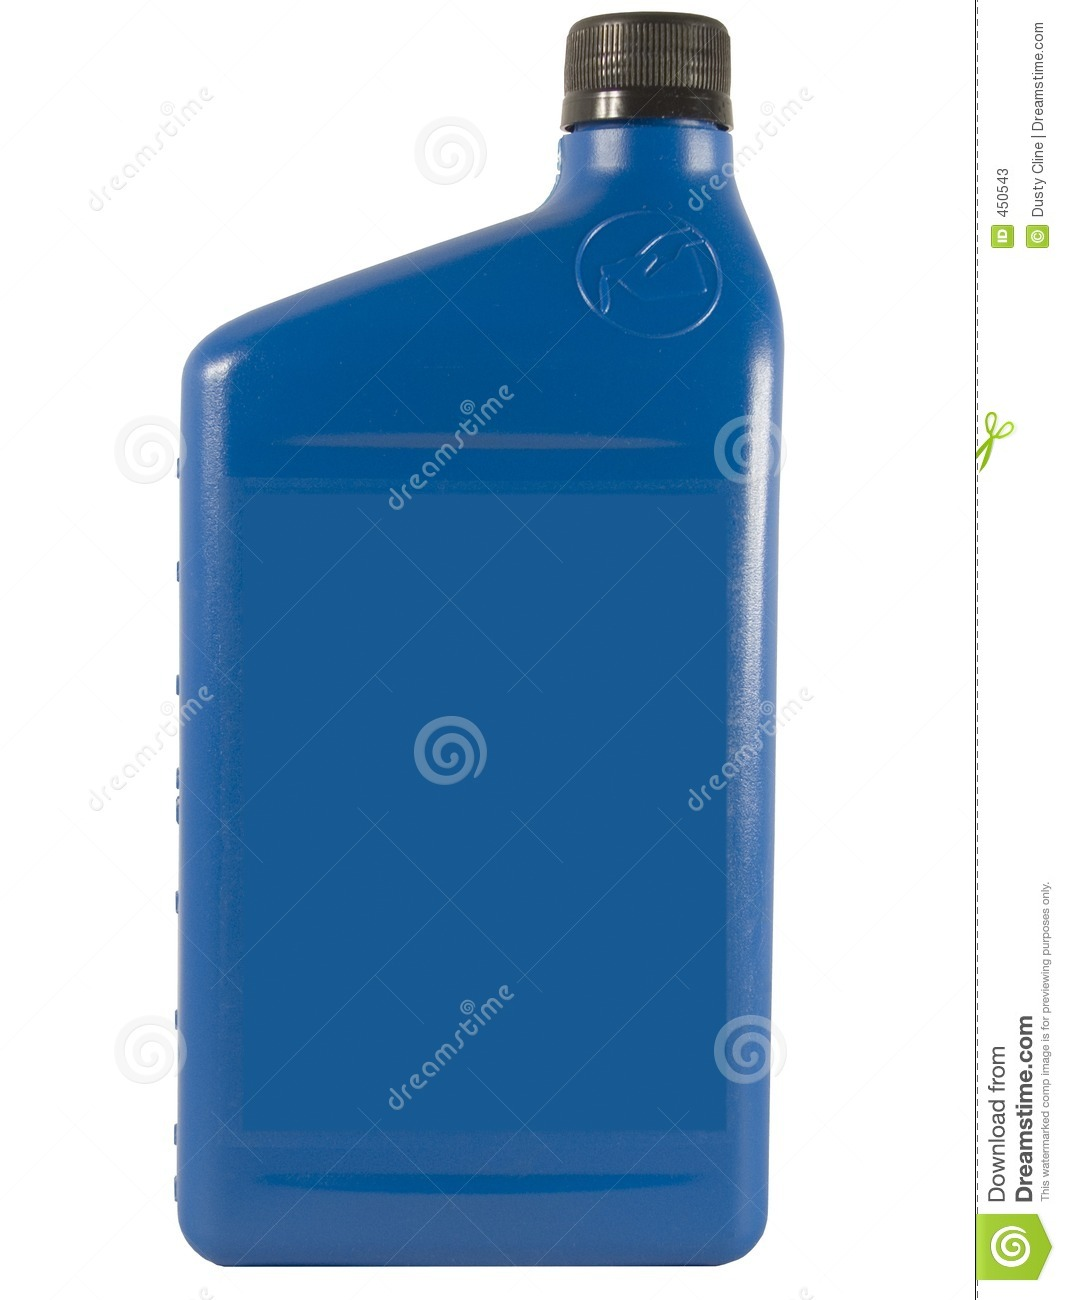 Download Blue Oil Bottle stock image. Image of blue, isolated, automotive - 450543